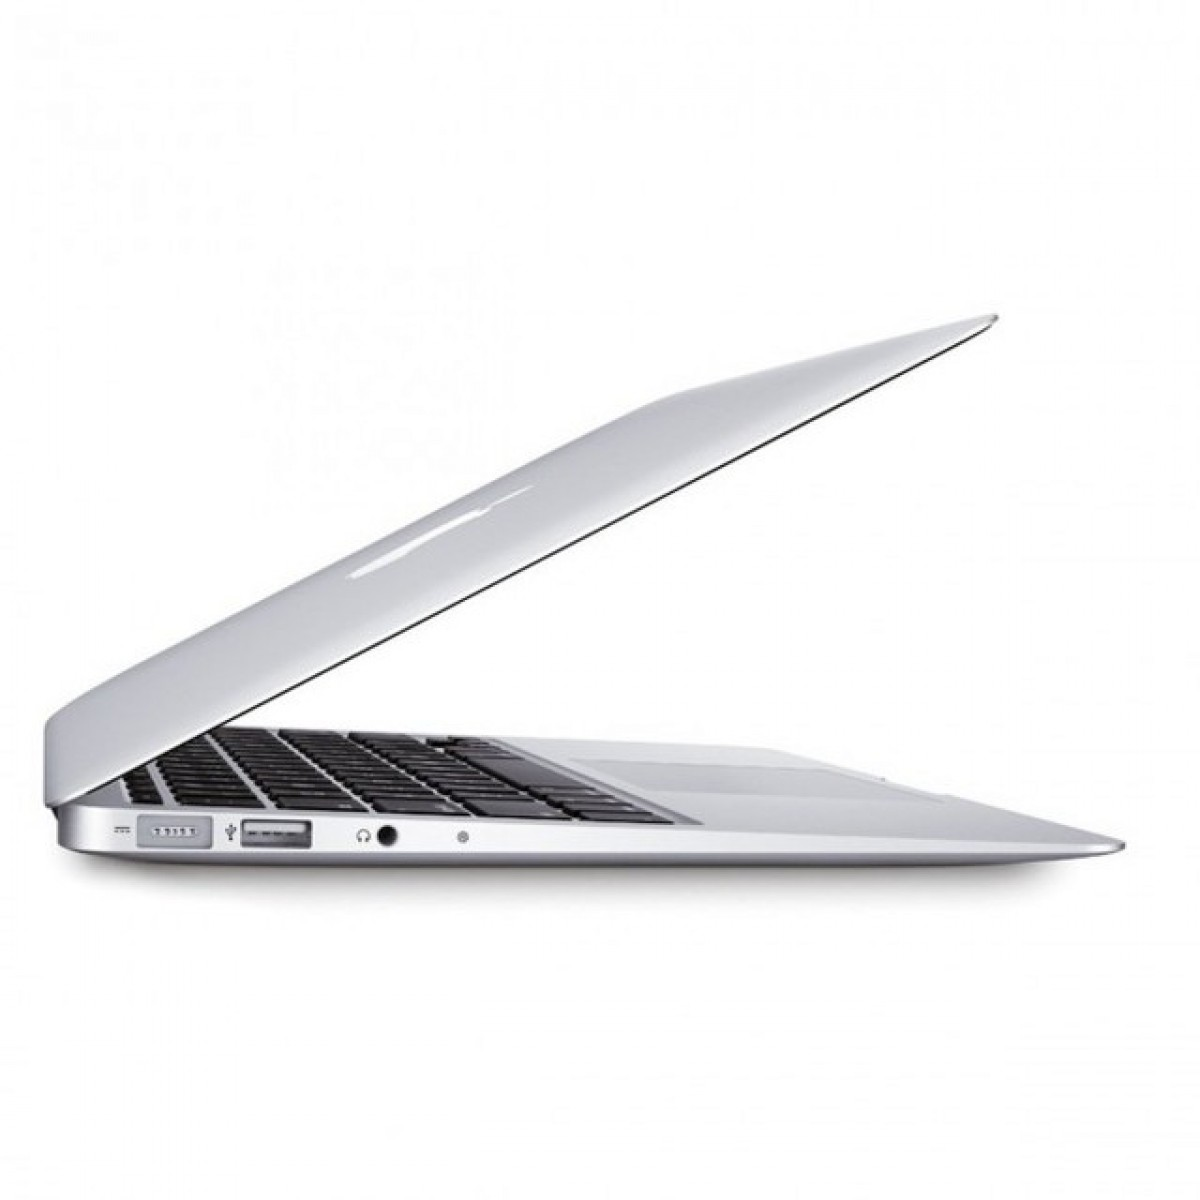 techinthebasket_macbookair_11inch_128gb_left_muy4-05